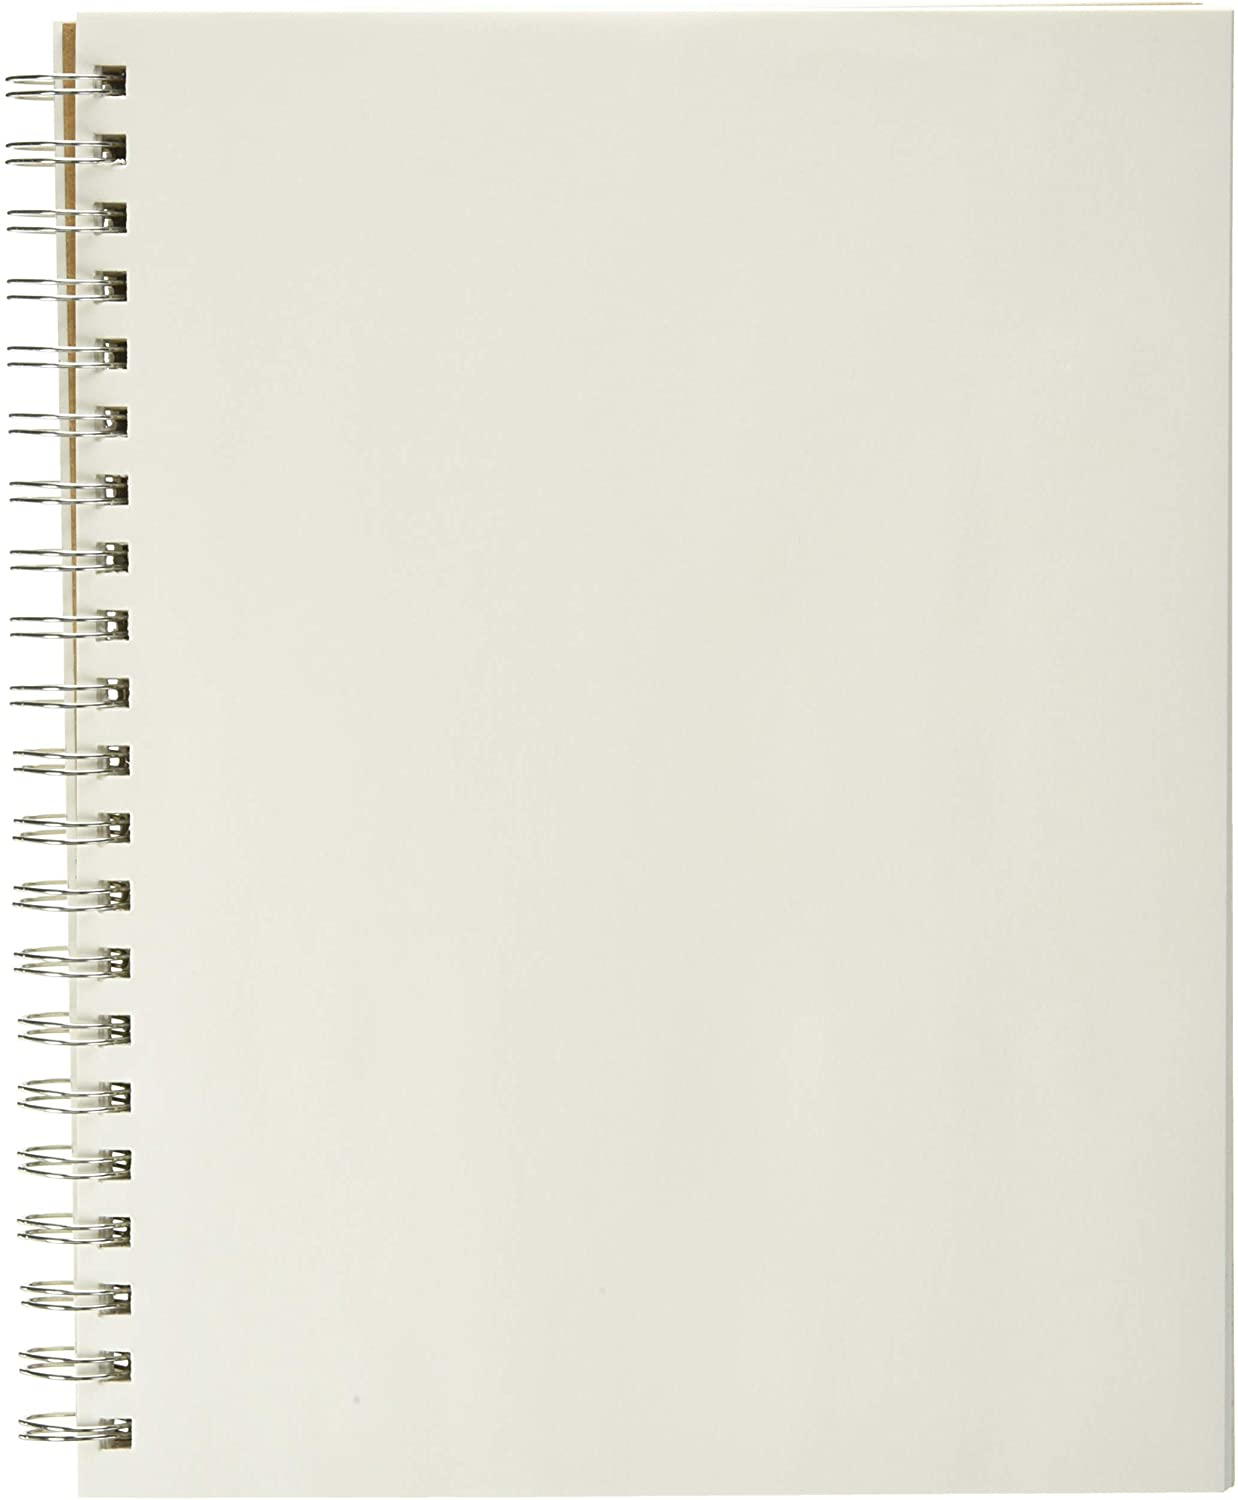 Strathmore 25-508 STR-025-508 100 Sheet Sketch Pad, 8.875 by 11, 8.5x11 Pack of 2